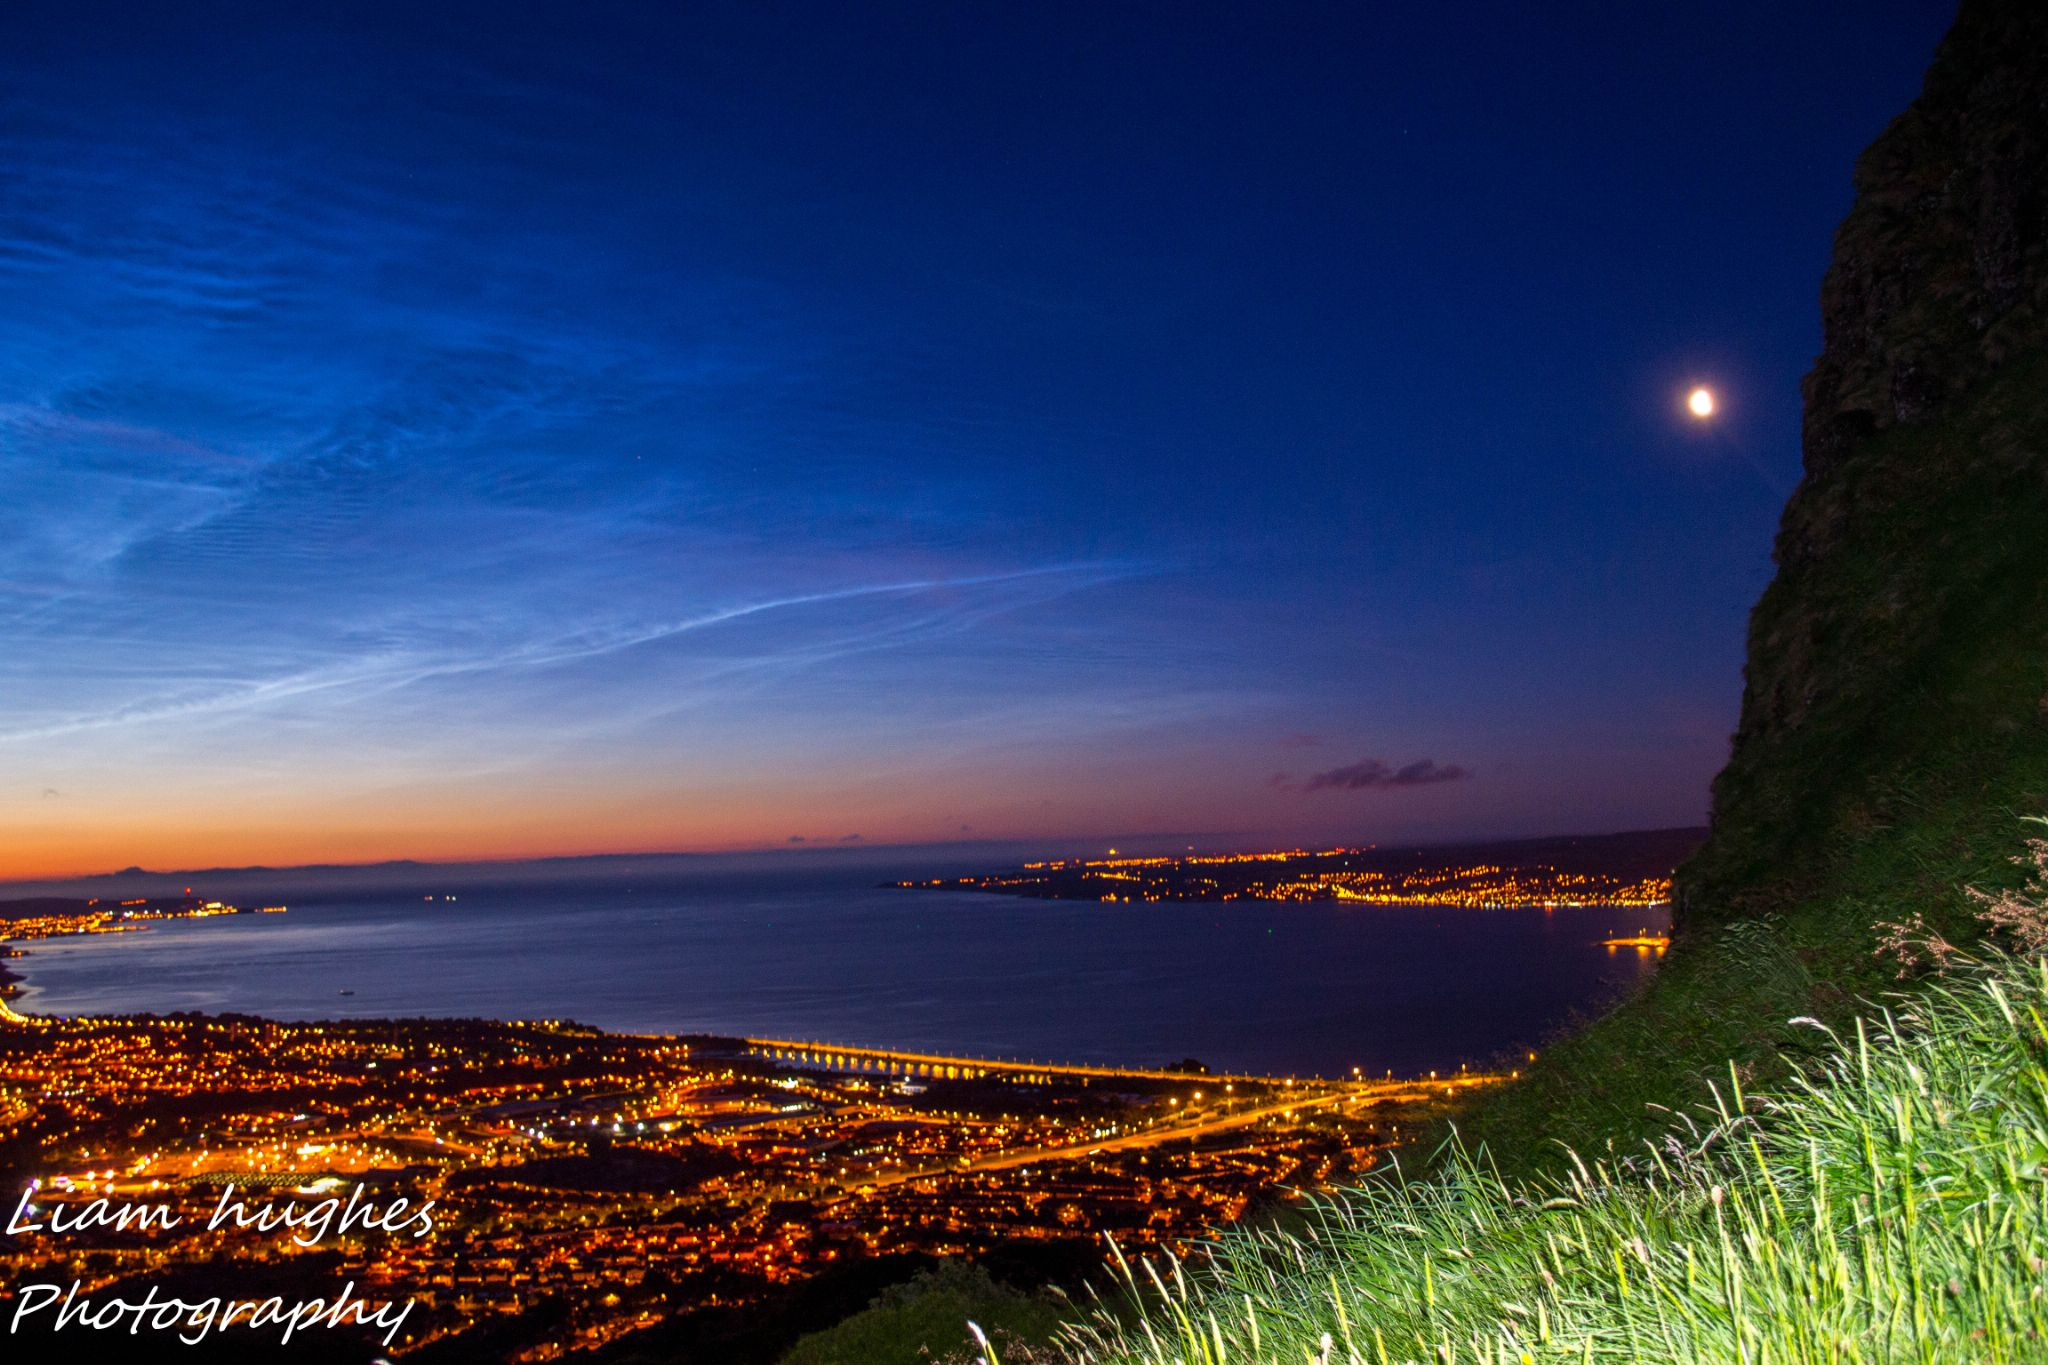 cave hill belfast by Liam hughes